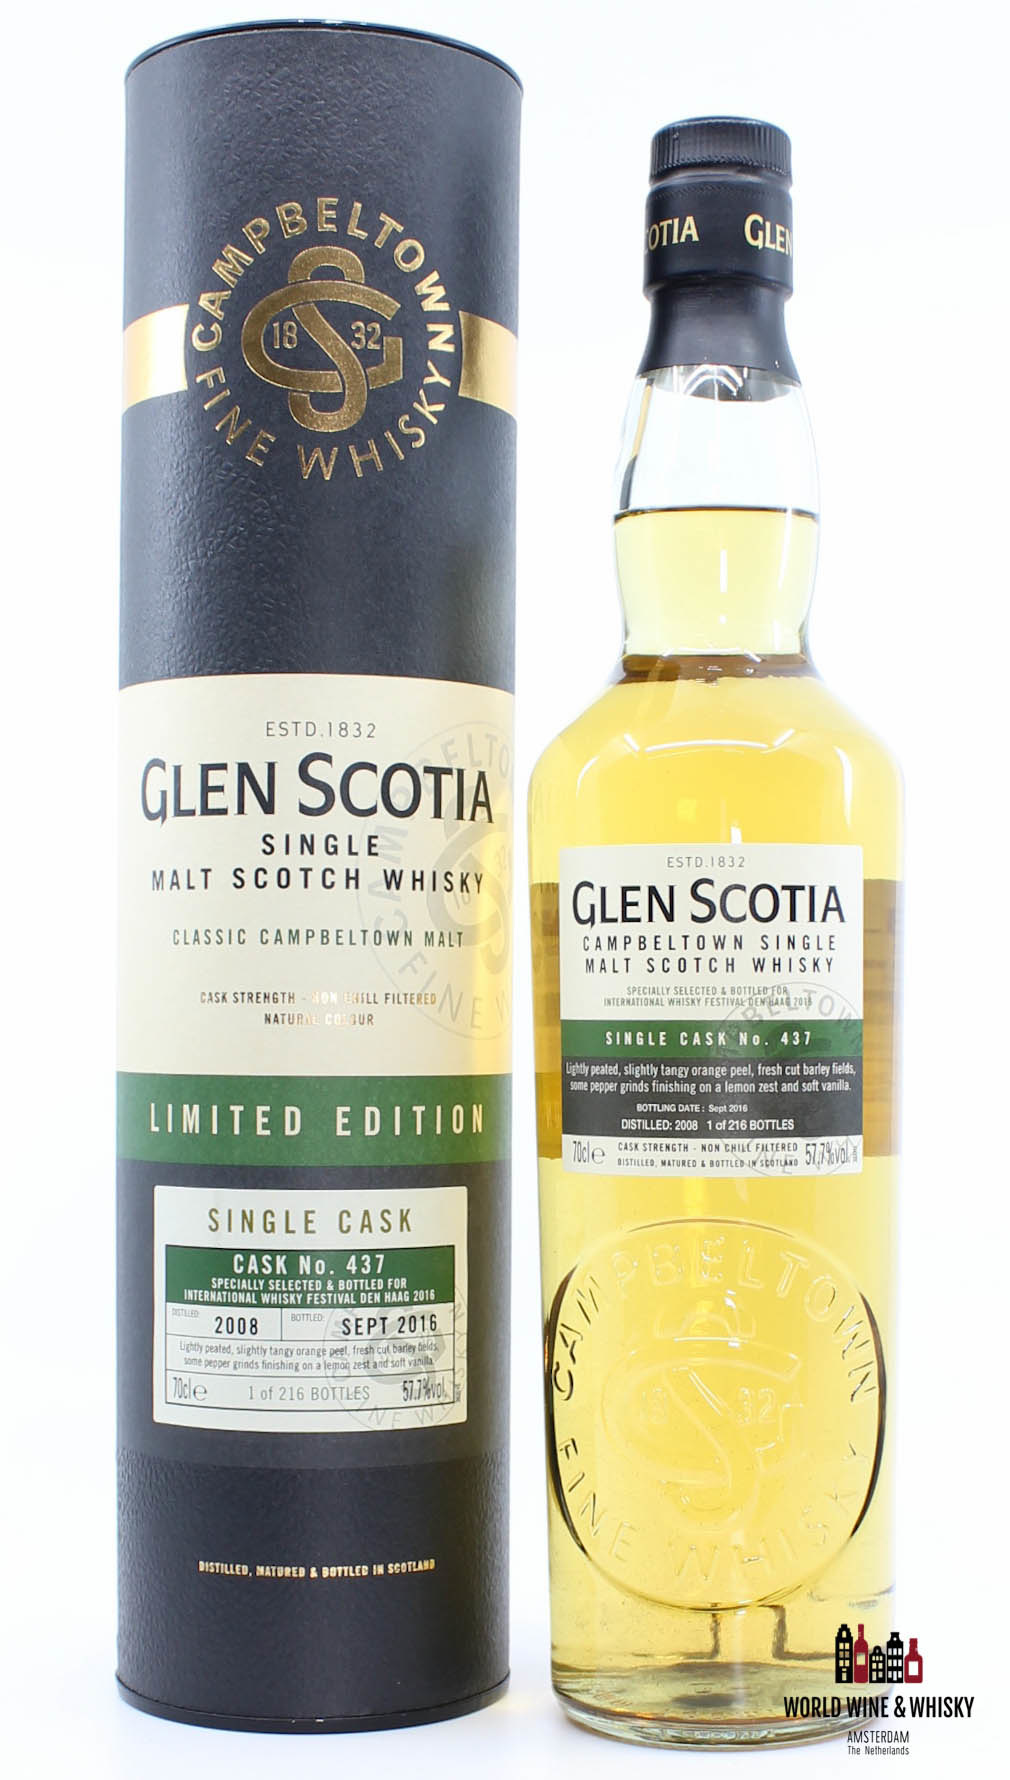 Glen Scotia Glen Scotia 8 Years Old 2008 2016 Limited Edition - Single Cask No. 437 57.7%